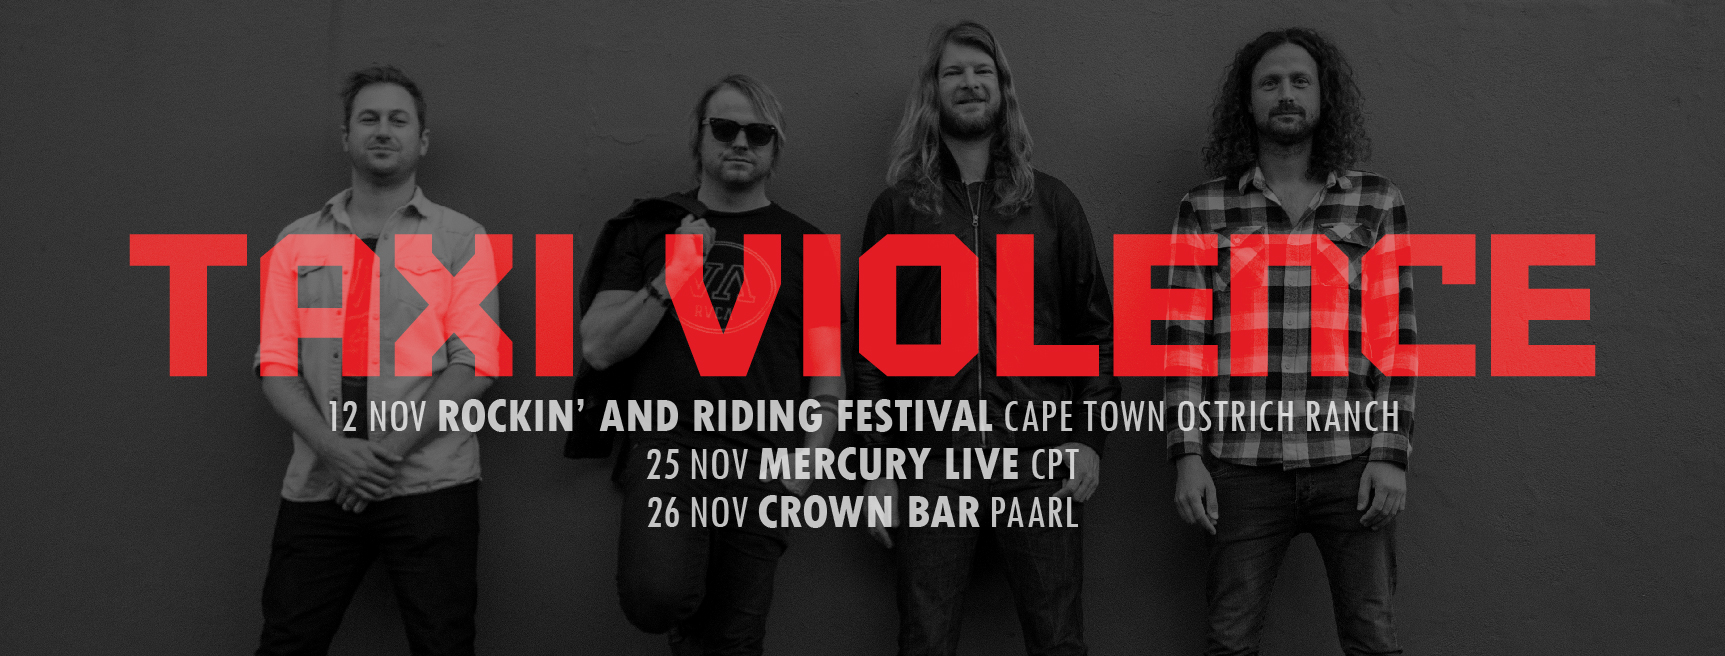 Taxi Violence gigs